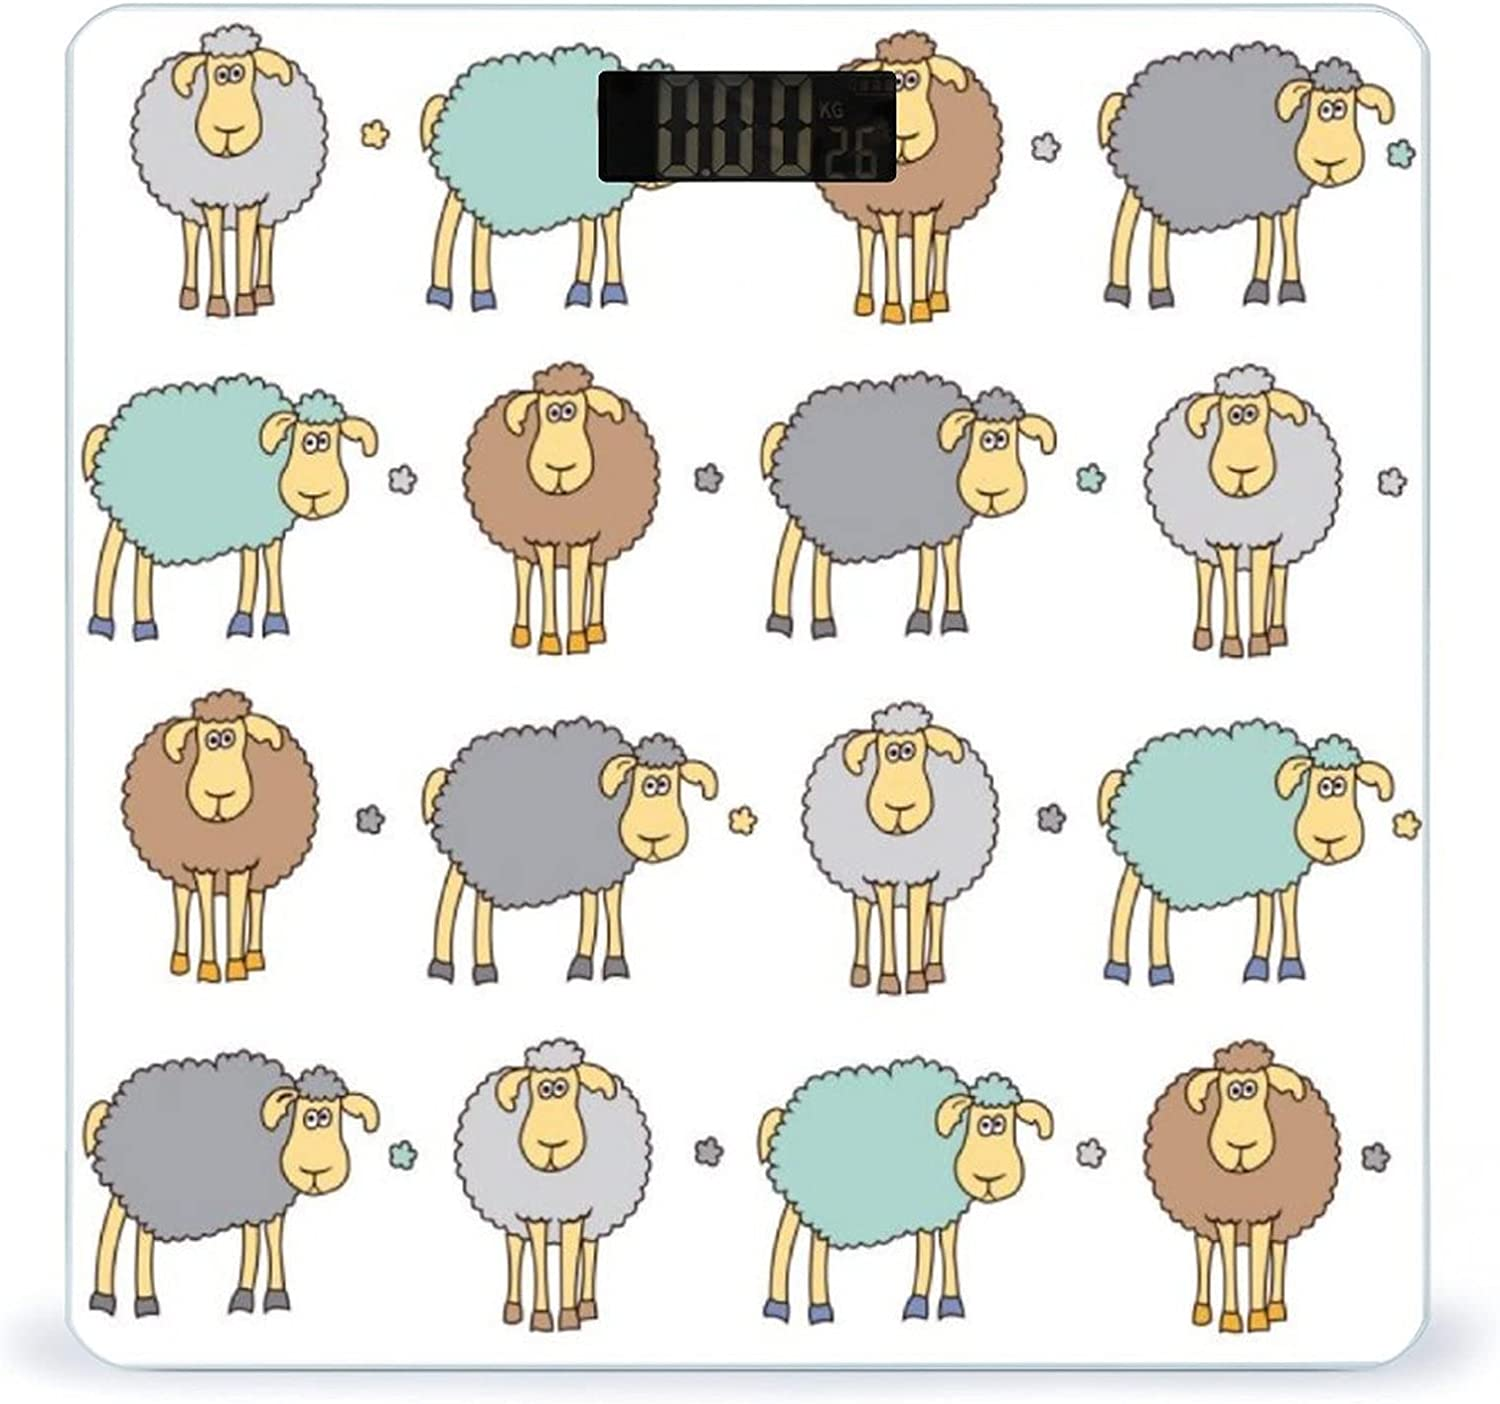 Deluxe CHUFZSD Colorful Free Shipping New Sheeps Pattern Highly Fitness Accurate Sc Smart